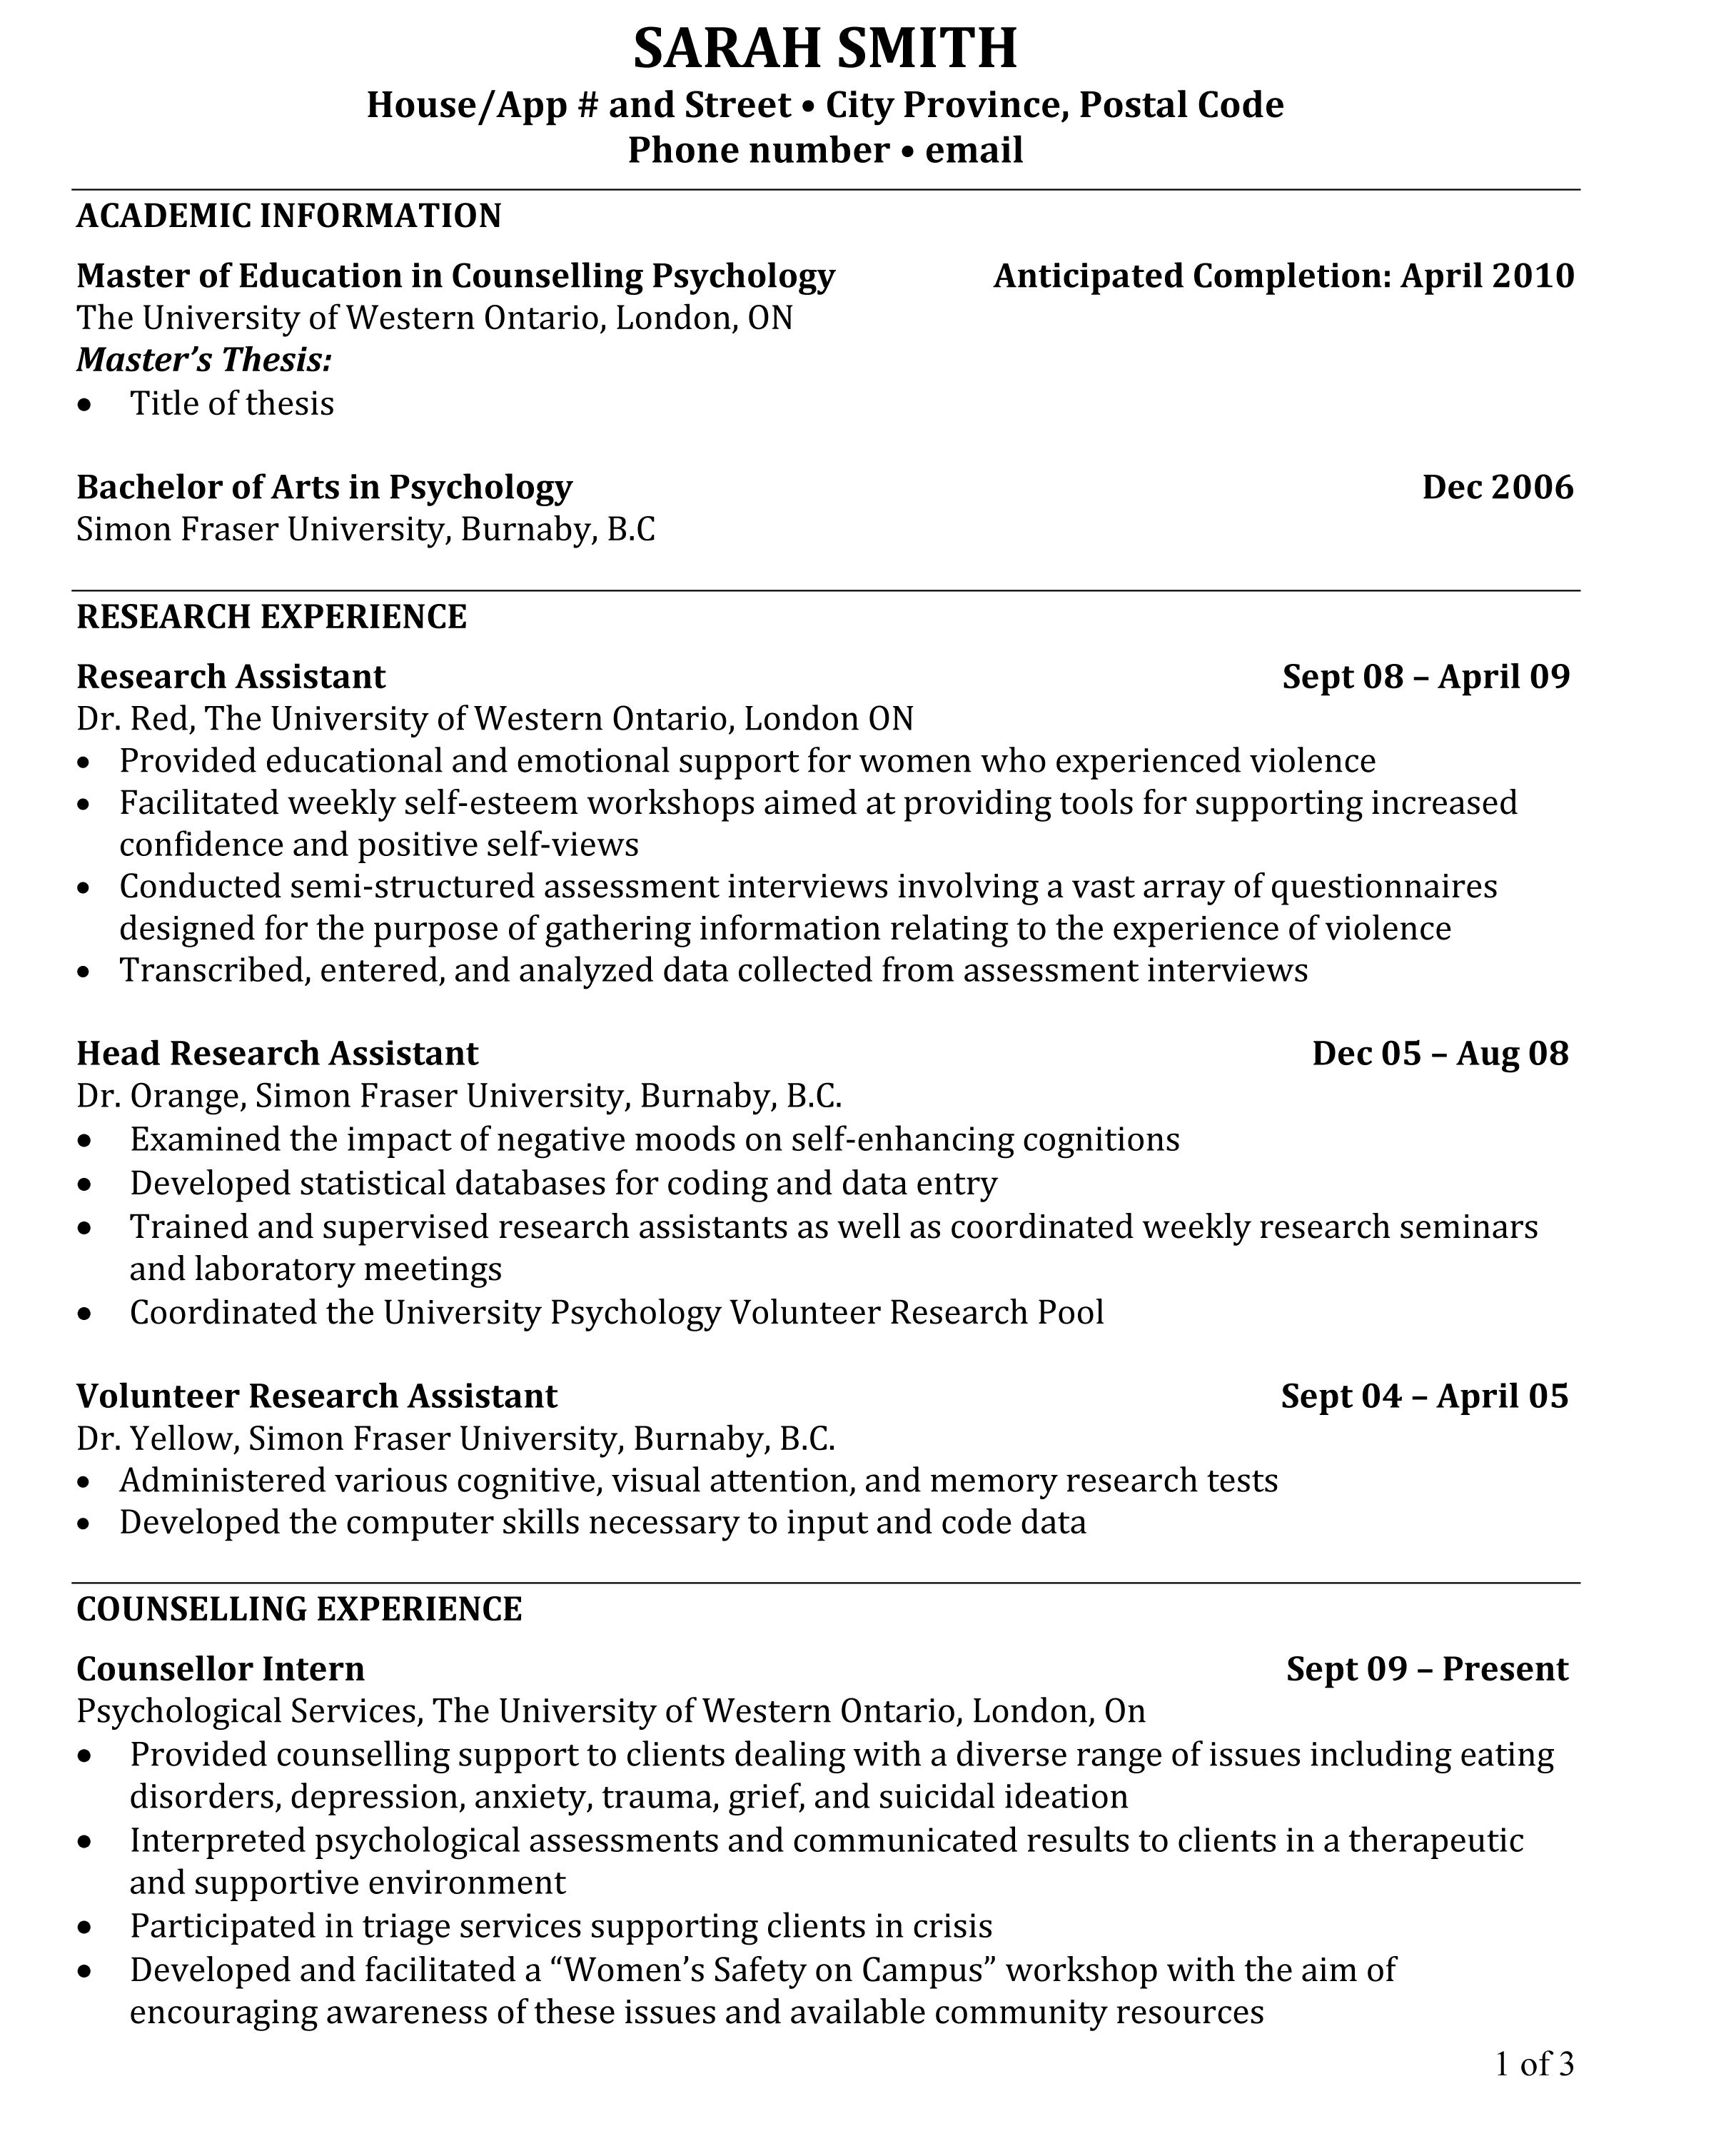 PhD CV The below is much closer to my experience level